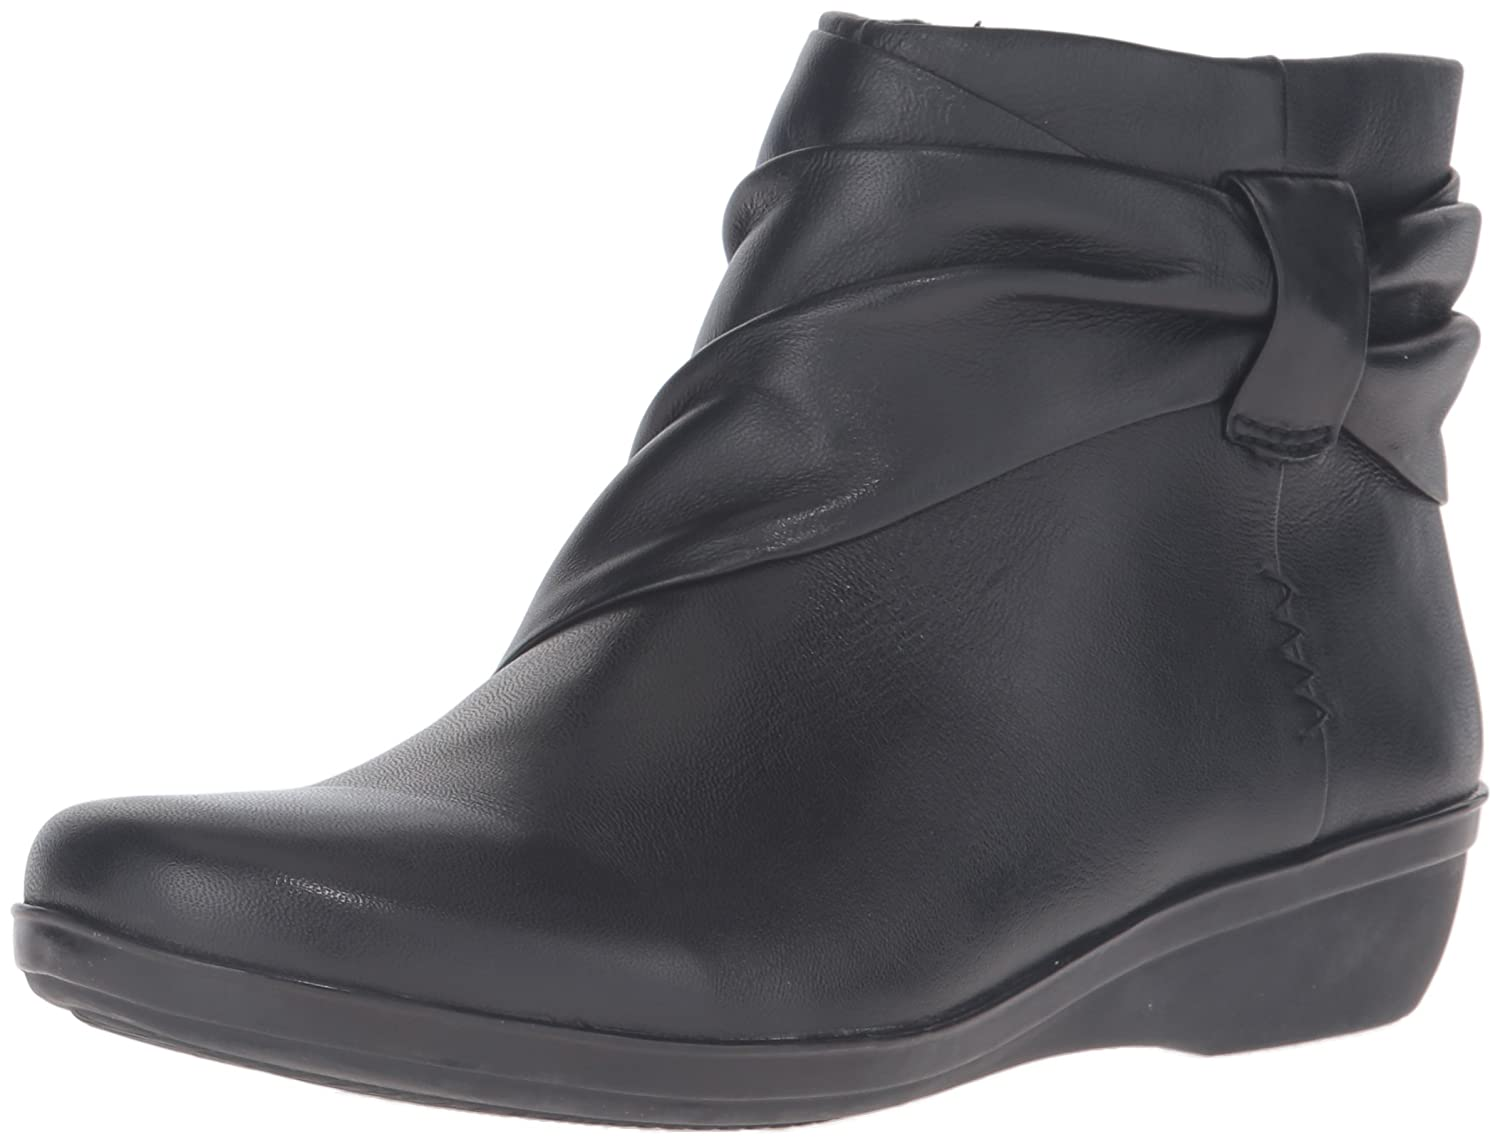 CLARKS Women's Everlay Mandy Boot B0196W8KH2 9 B(M) US|Black Leather